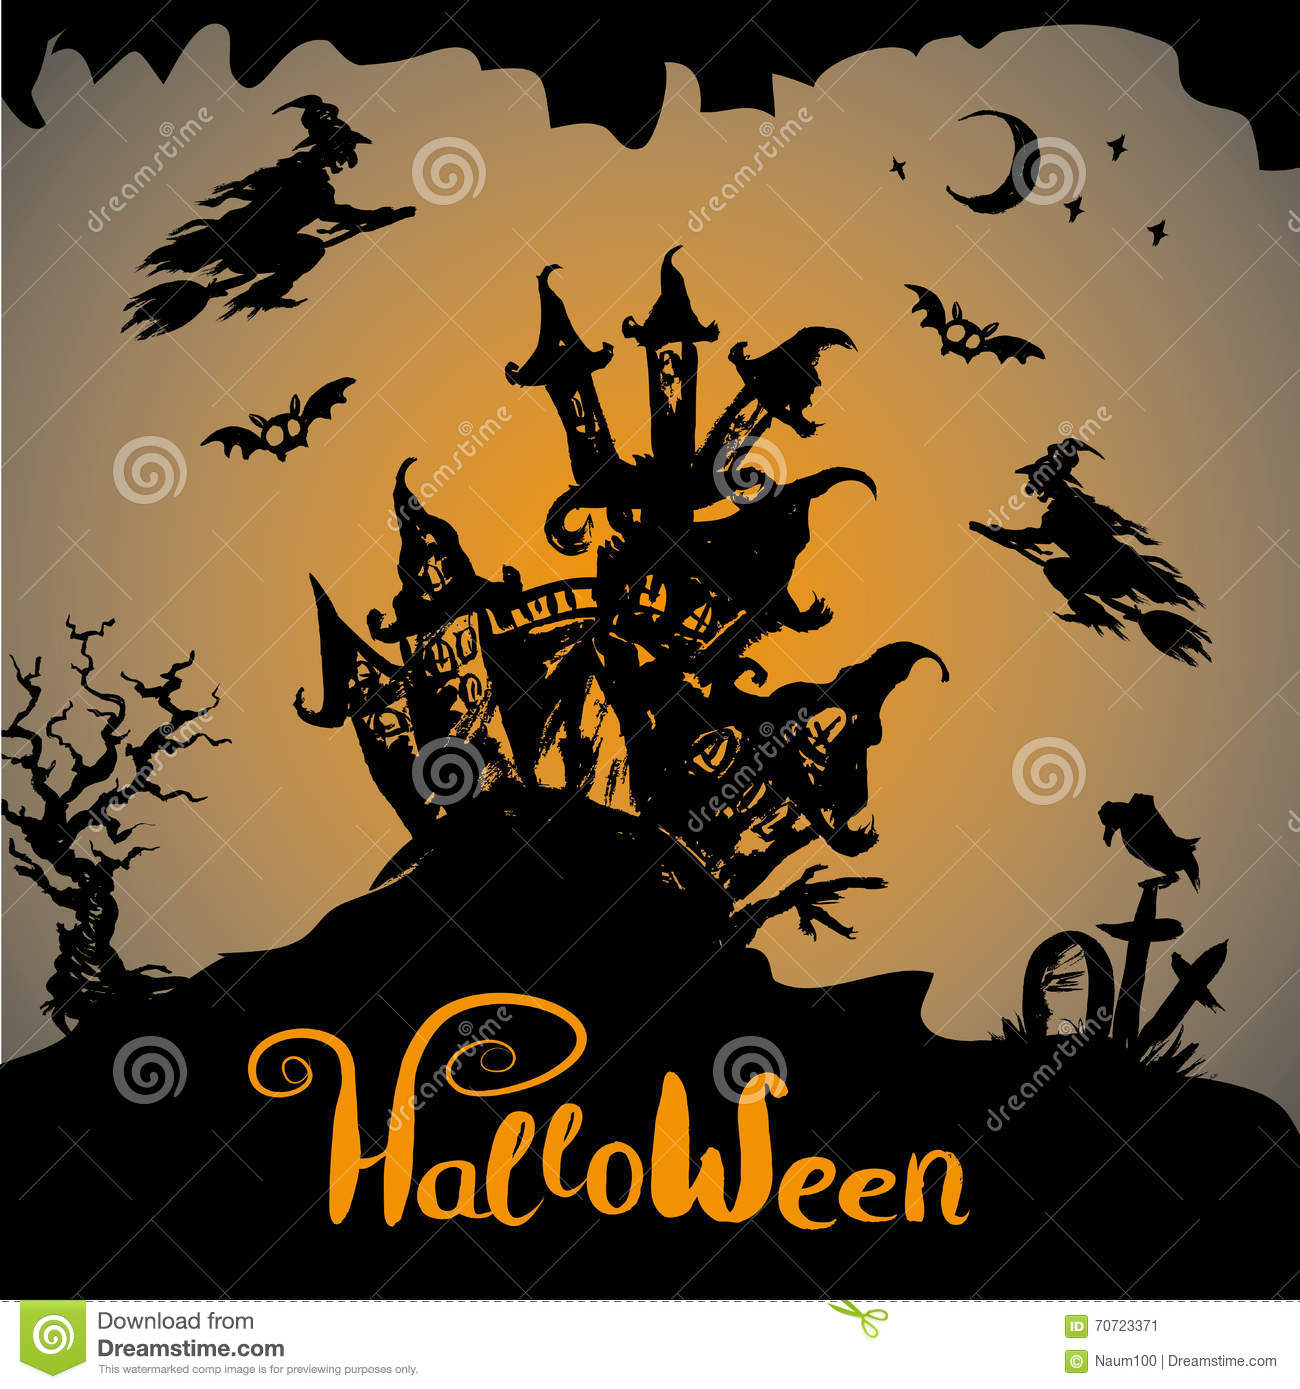 Halloween Night Background With Haunted House Stock Vector ...